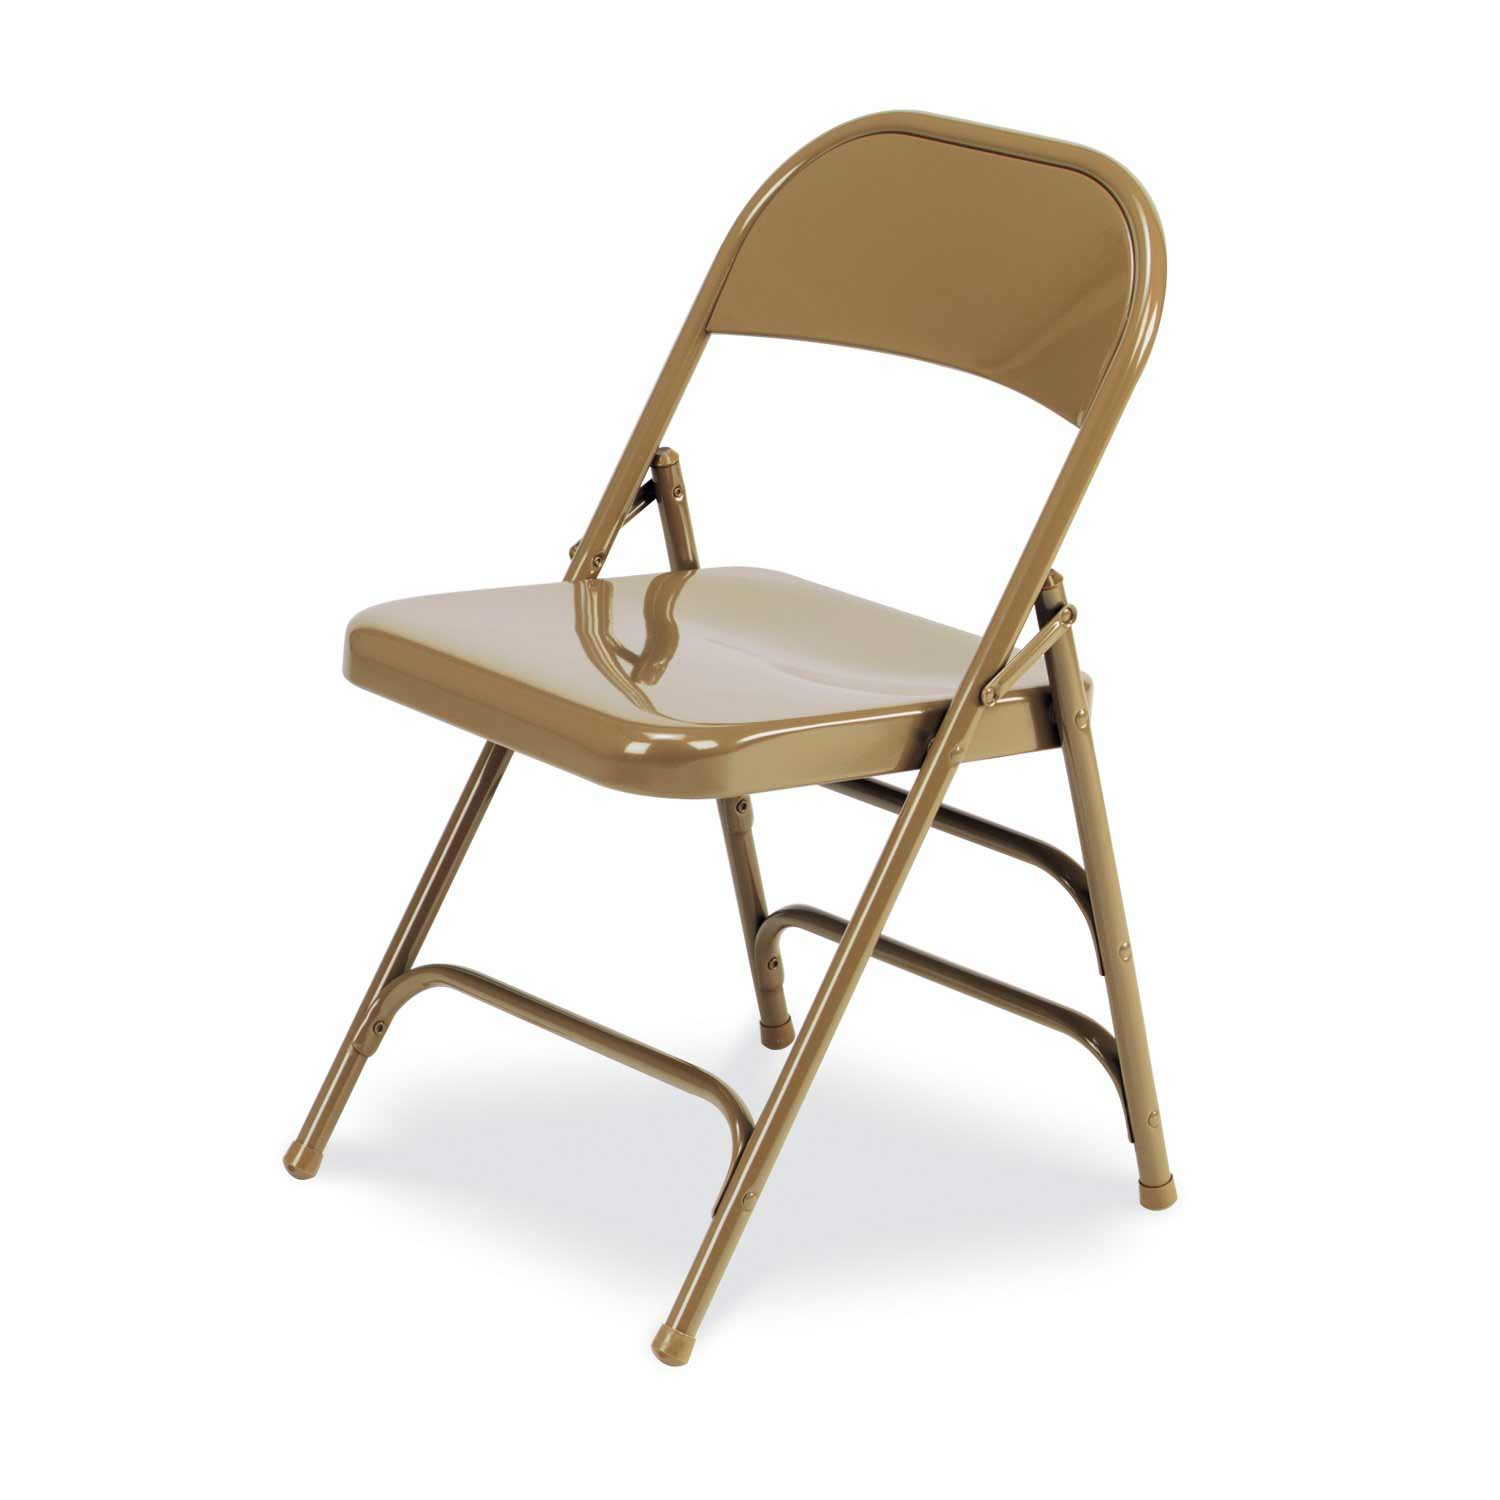 Virco Folding Chairs for All Events : Virco folding chairs 167 in golden metal from office-turn.com size 1500 x 1500 jpeg 50kB